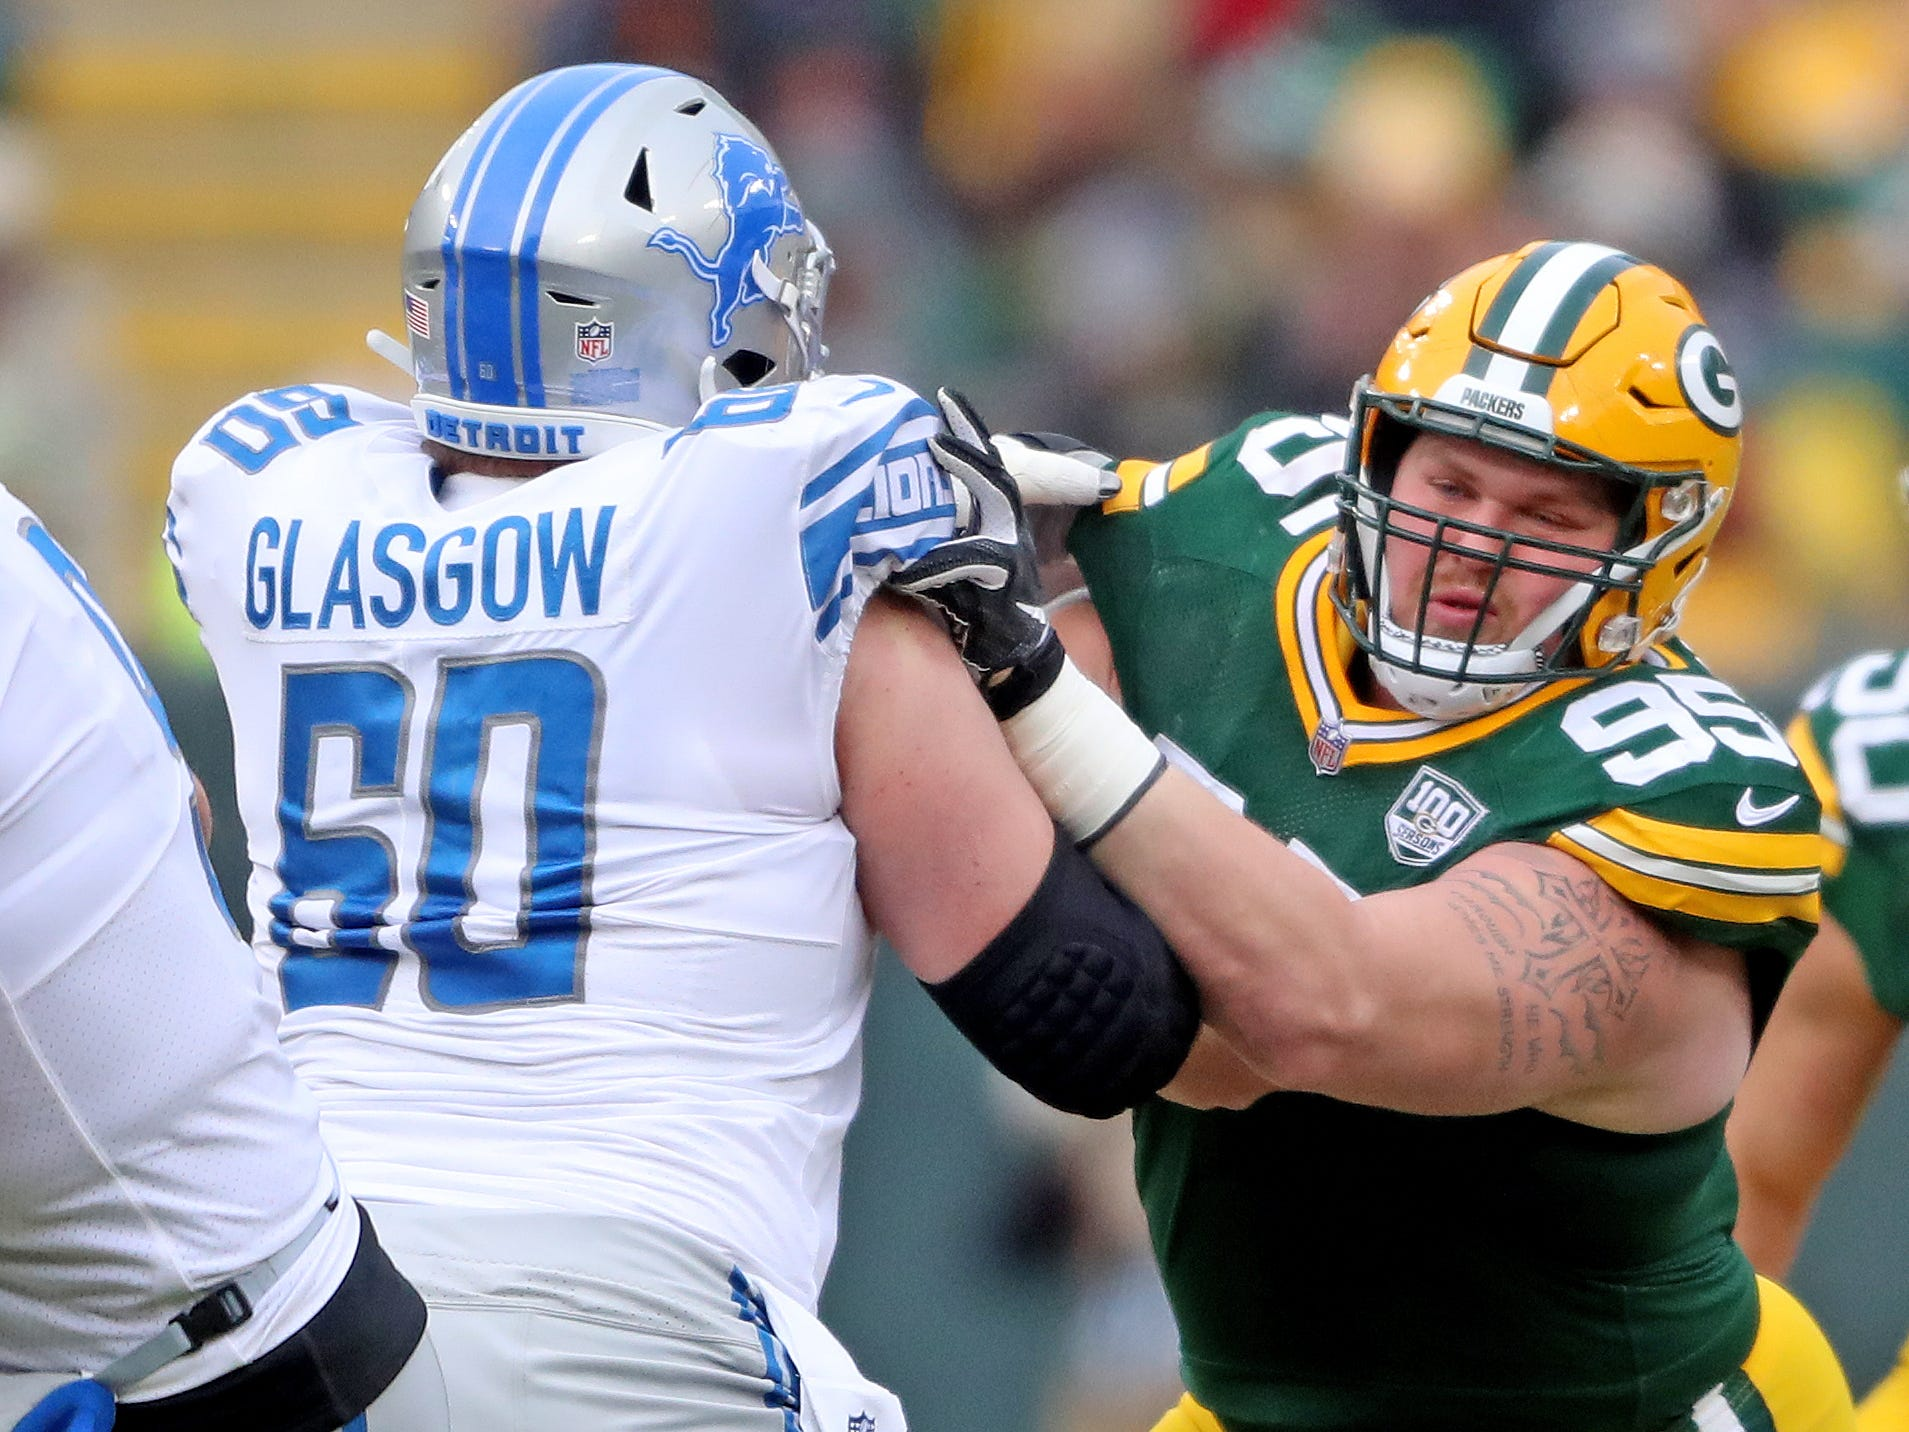 Green Bay Packers defensive tackle Tyler Lancaster (95) blocks against the Detroit Lions center Graham Glasgow (60) at Lambeau Field Sunday, December 30, 2018 in Green Bay, Wis.